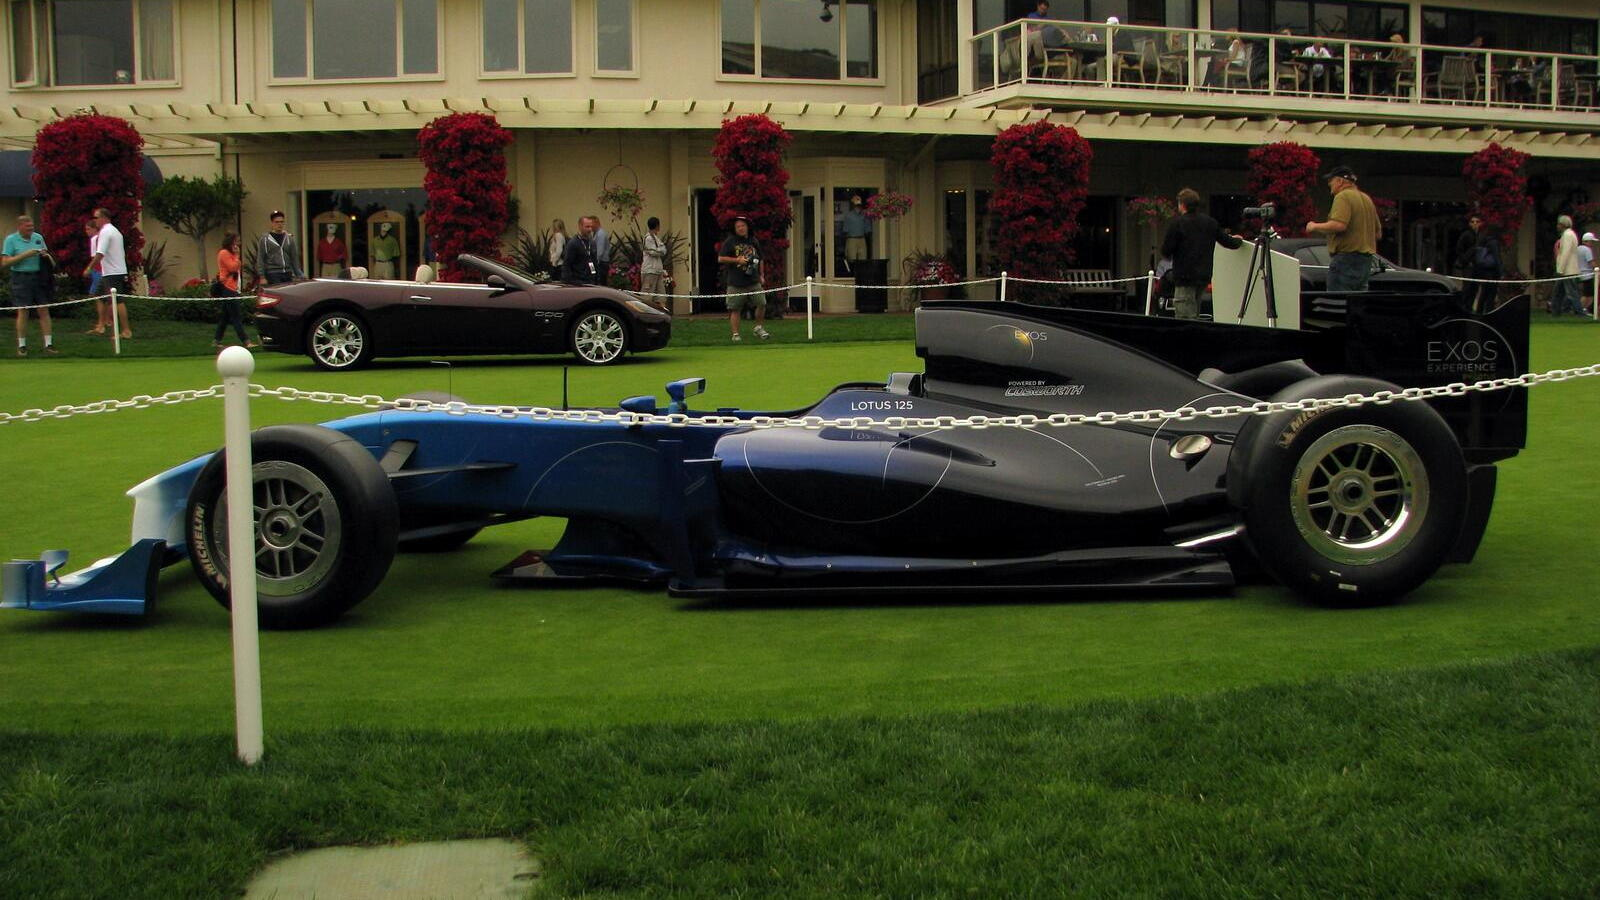 Lotus Exos Type 125 at Pebble Beach